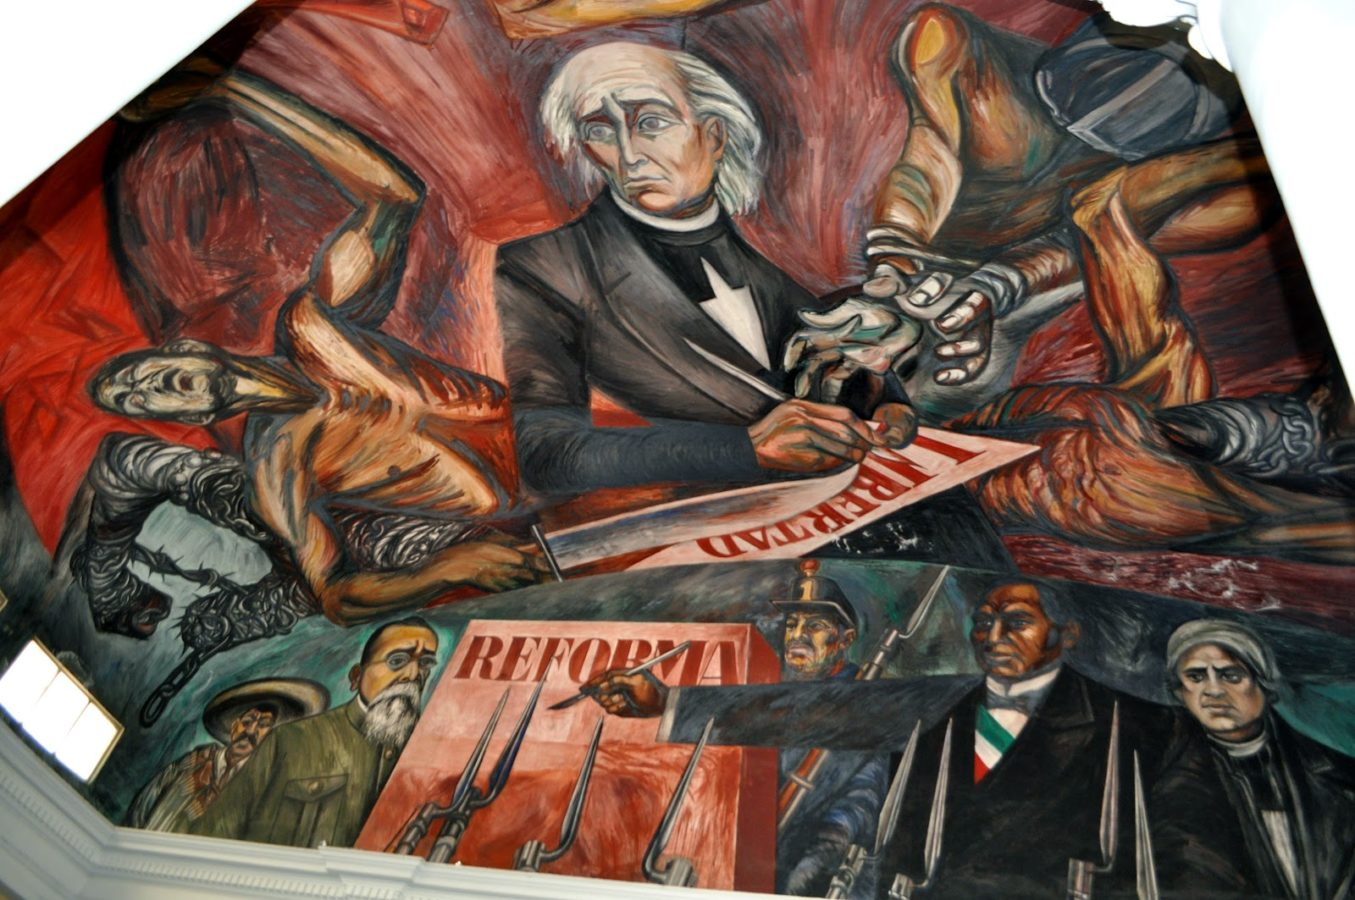 The Great Mexican Revolutionary Law and Freedom of the Slaves, José Clemente Orozco, 1949, Palacio Municipal de Guadalajara, The History of Mexico in Murals